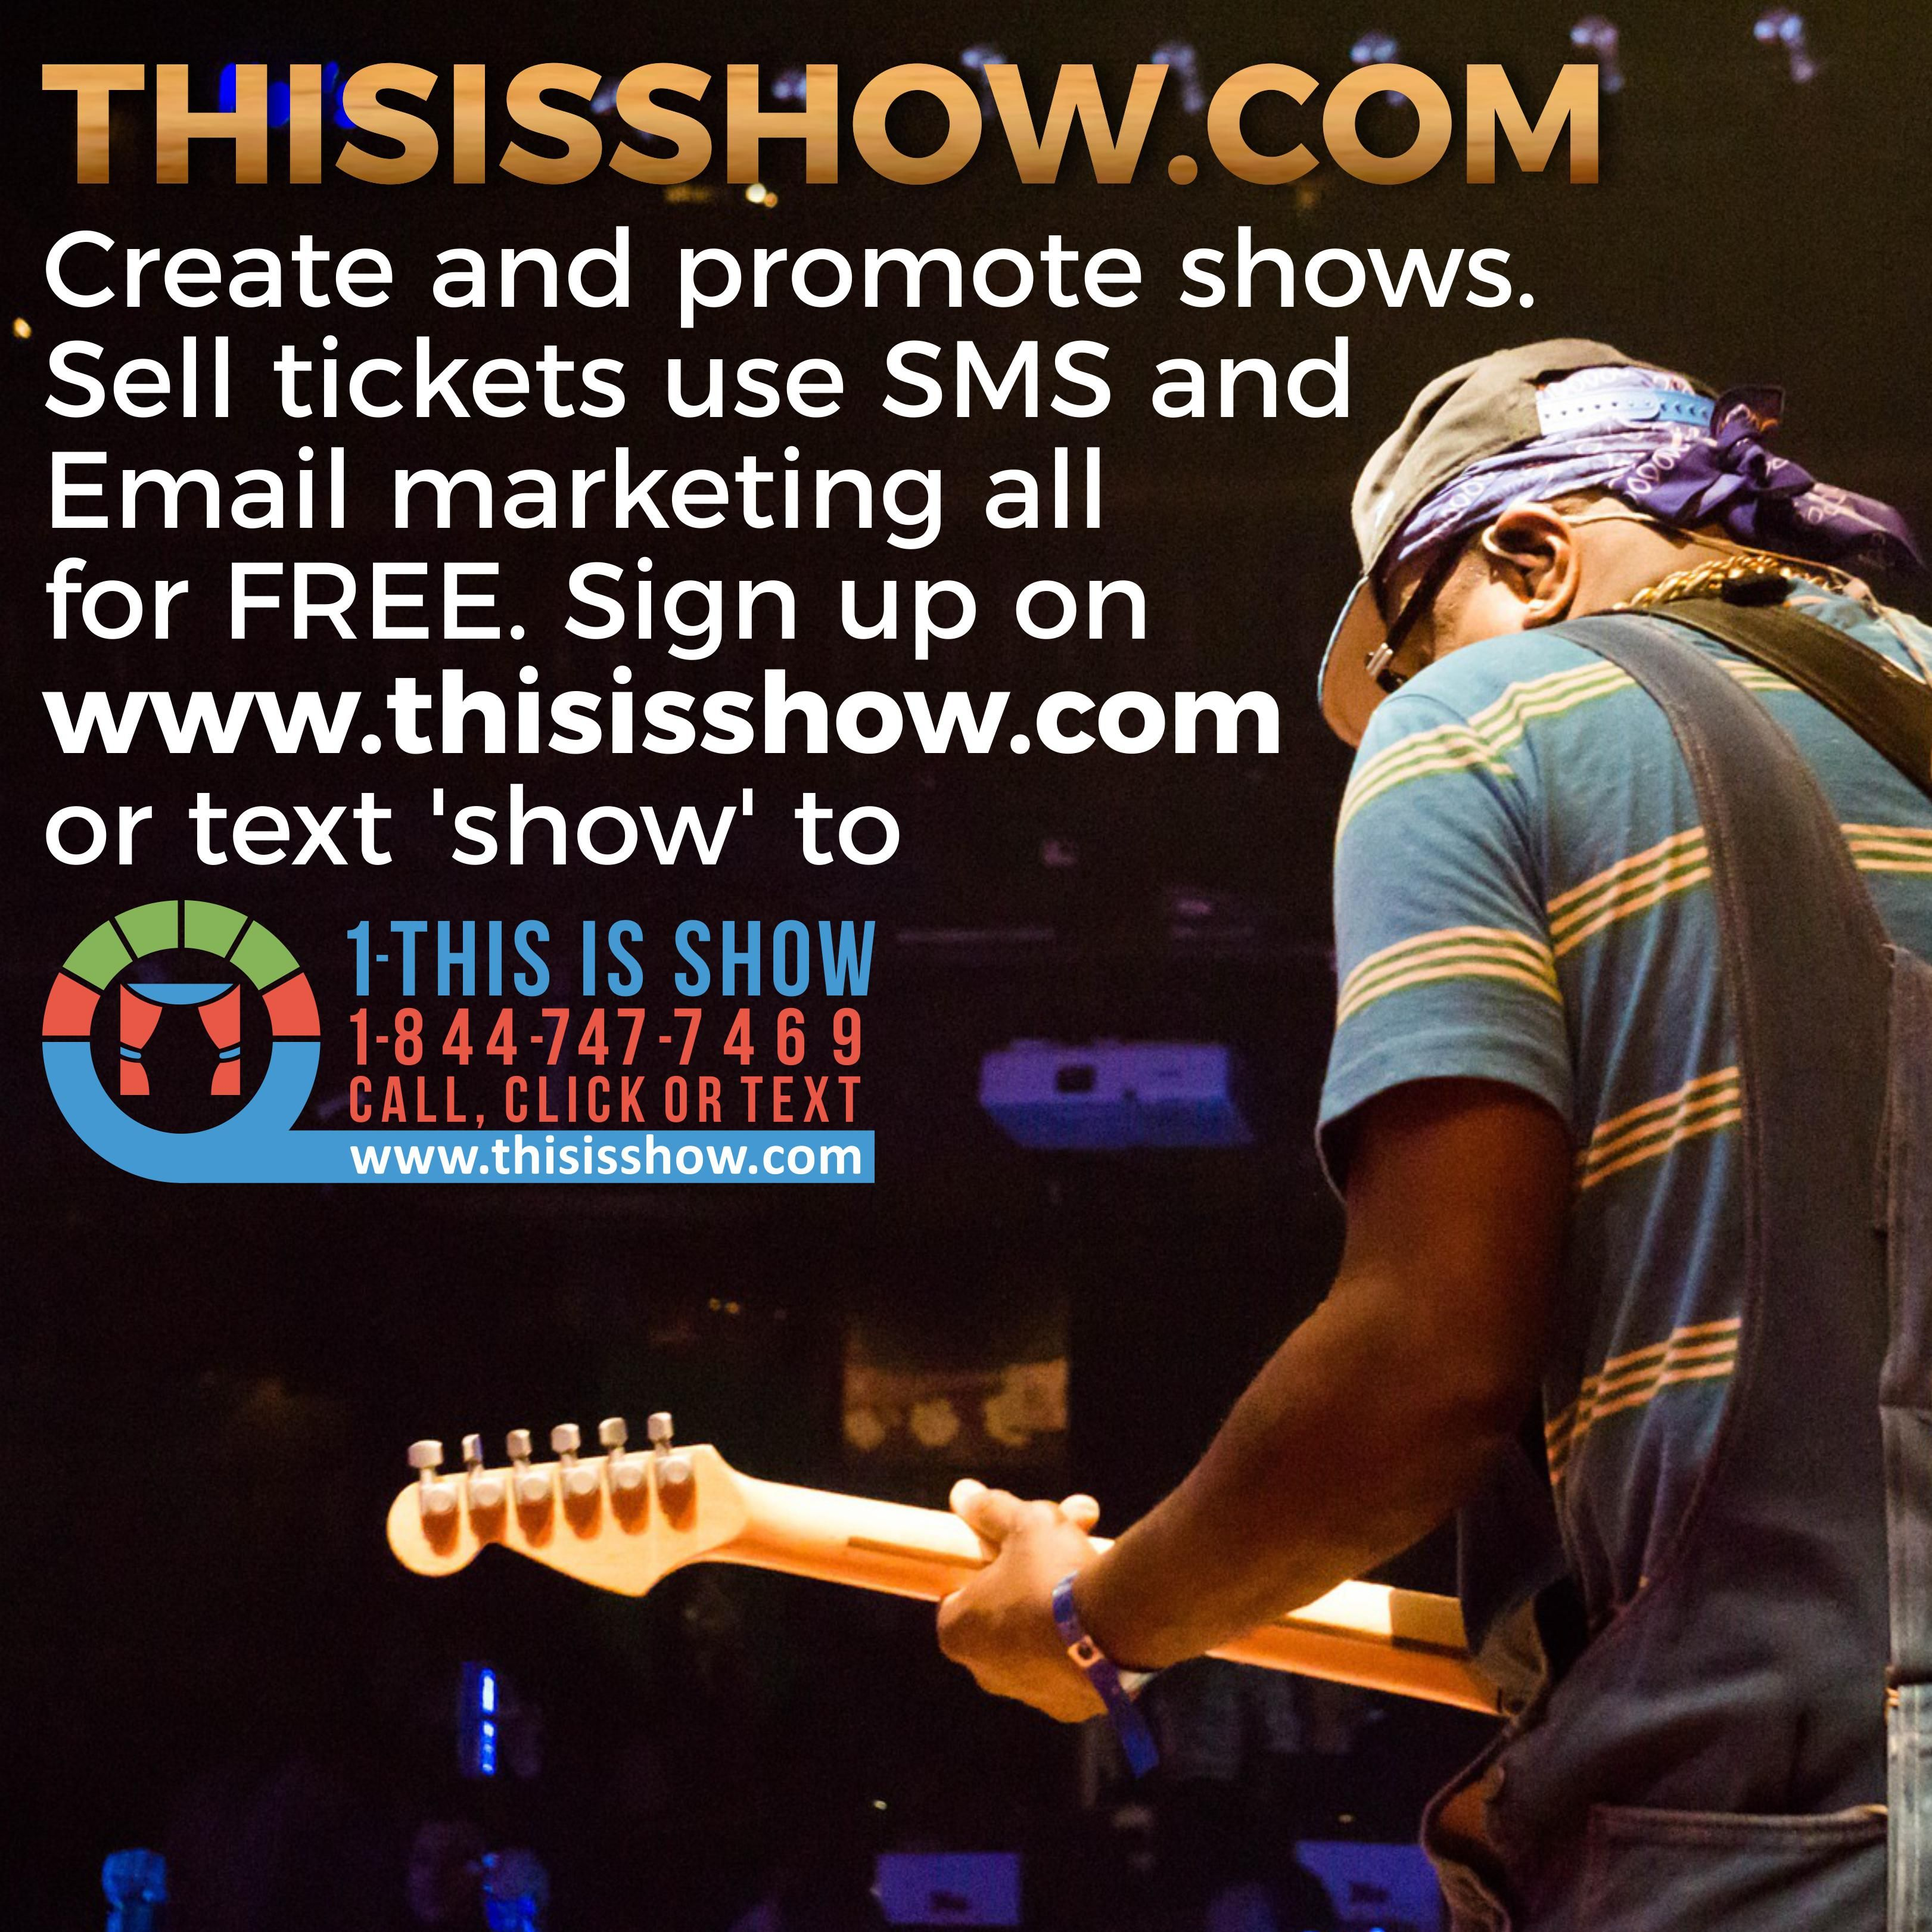 Register as Show organizer and post your show with all the